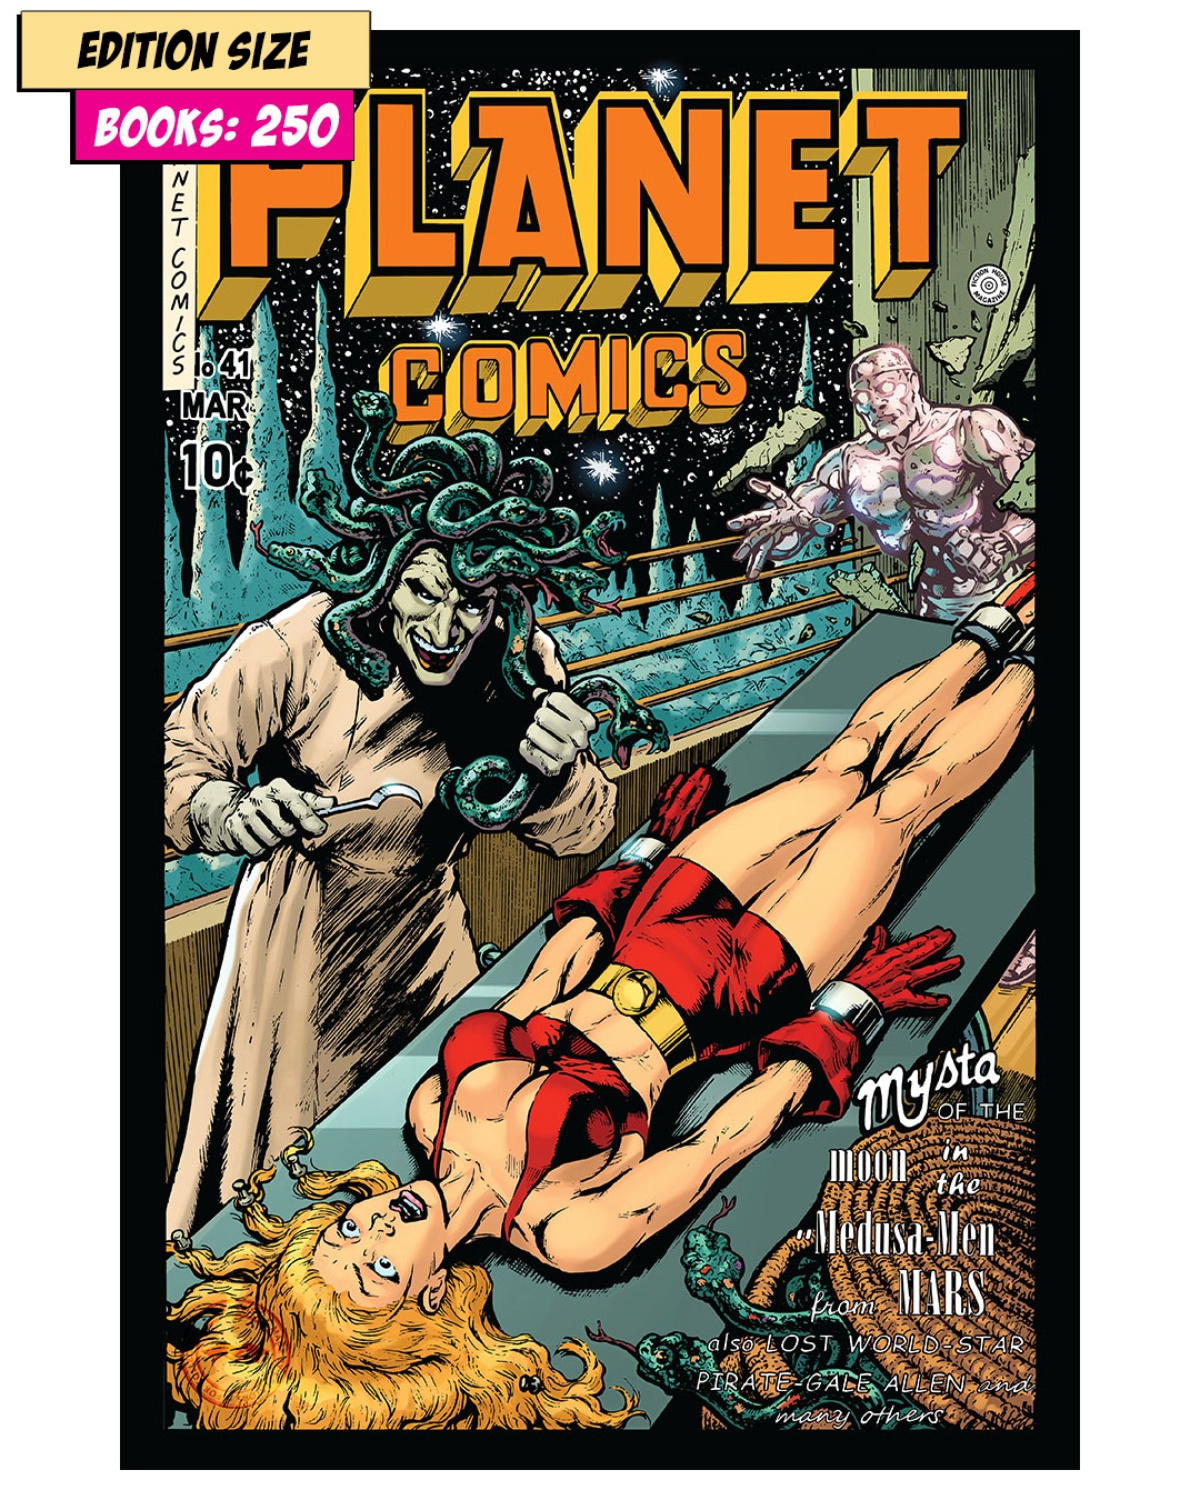 Book - PLANET COMICS #41 PARTIAL: REPRINT